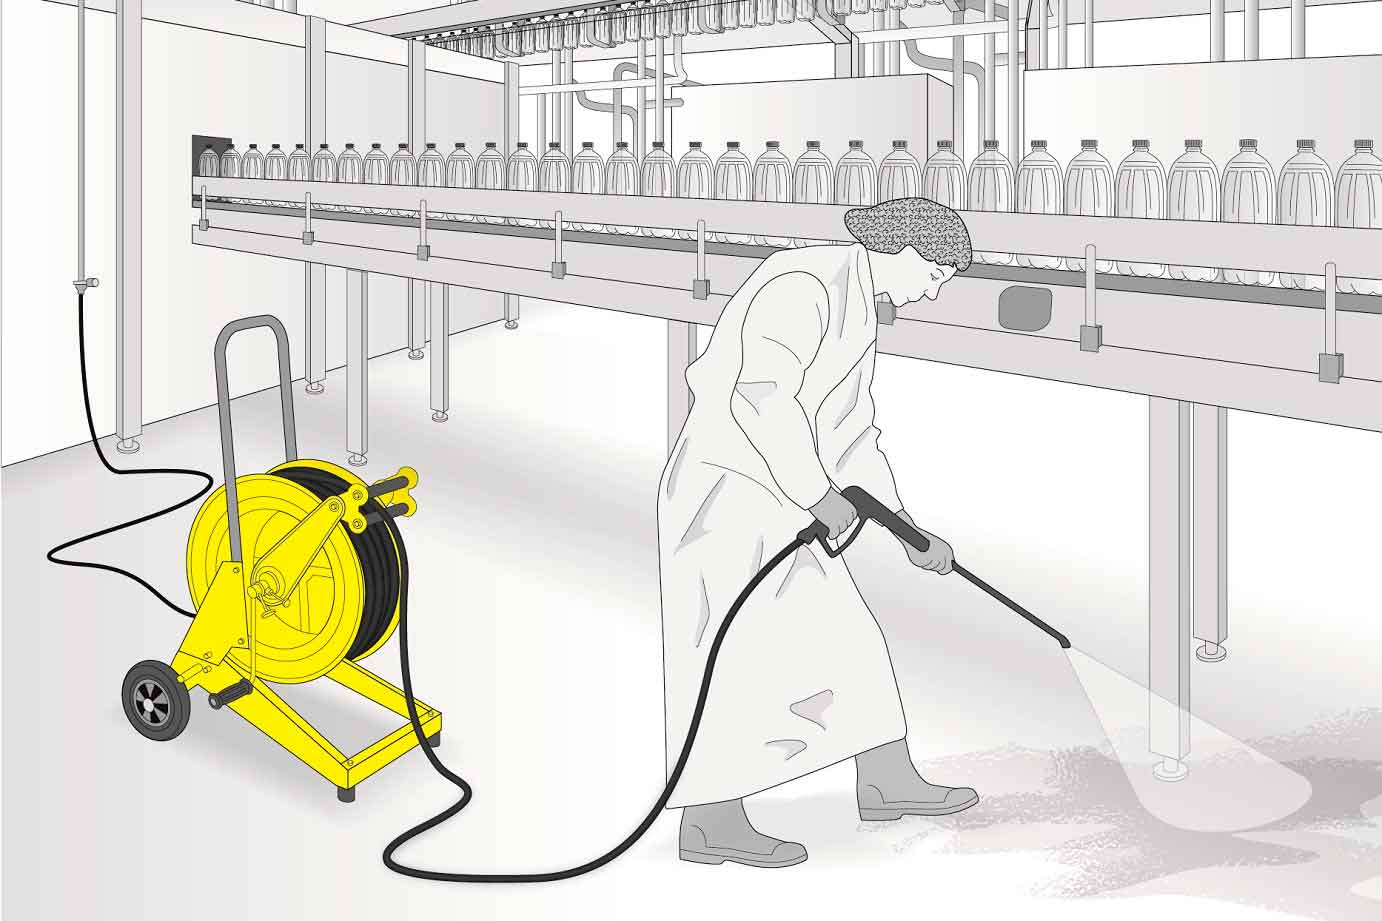 STOP&GO: OUR NEW TROLLEY-MOUNTED HOSE REELS